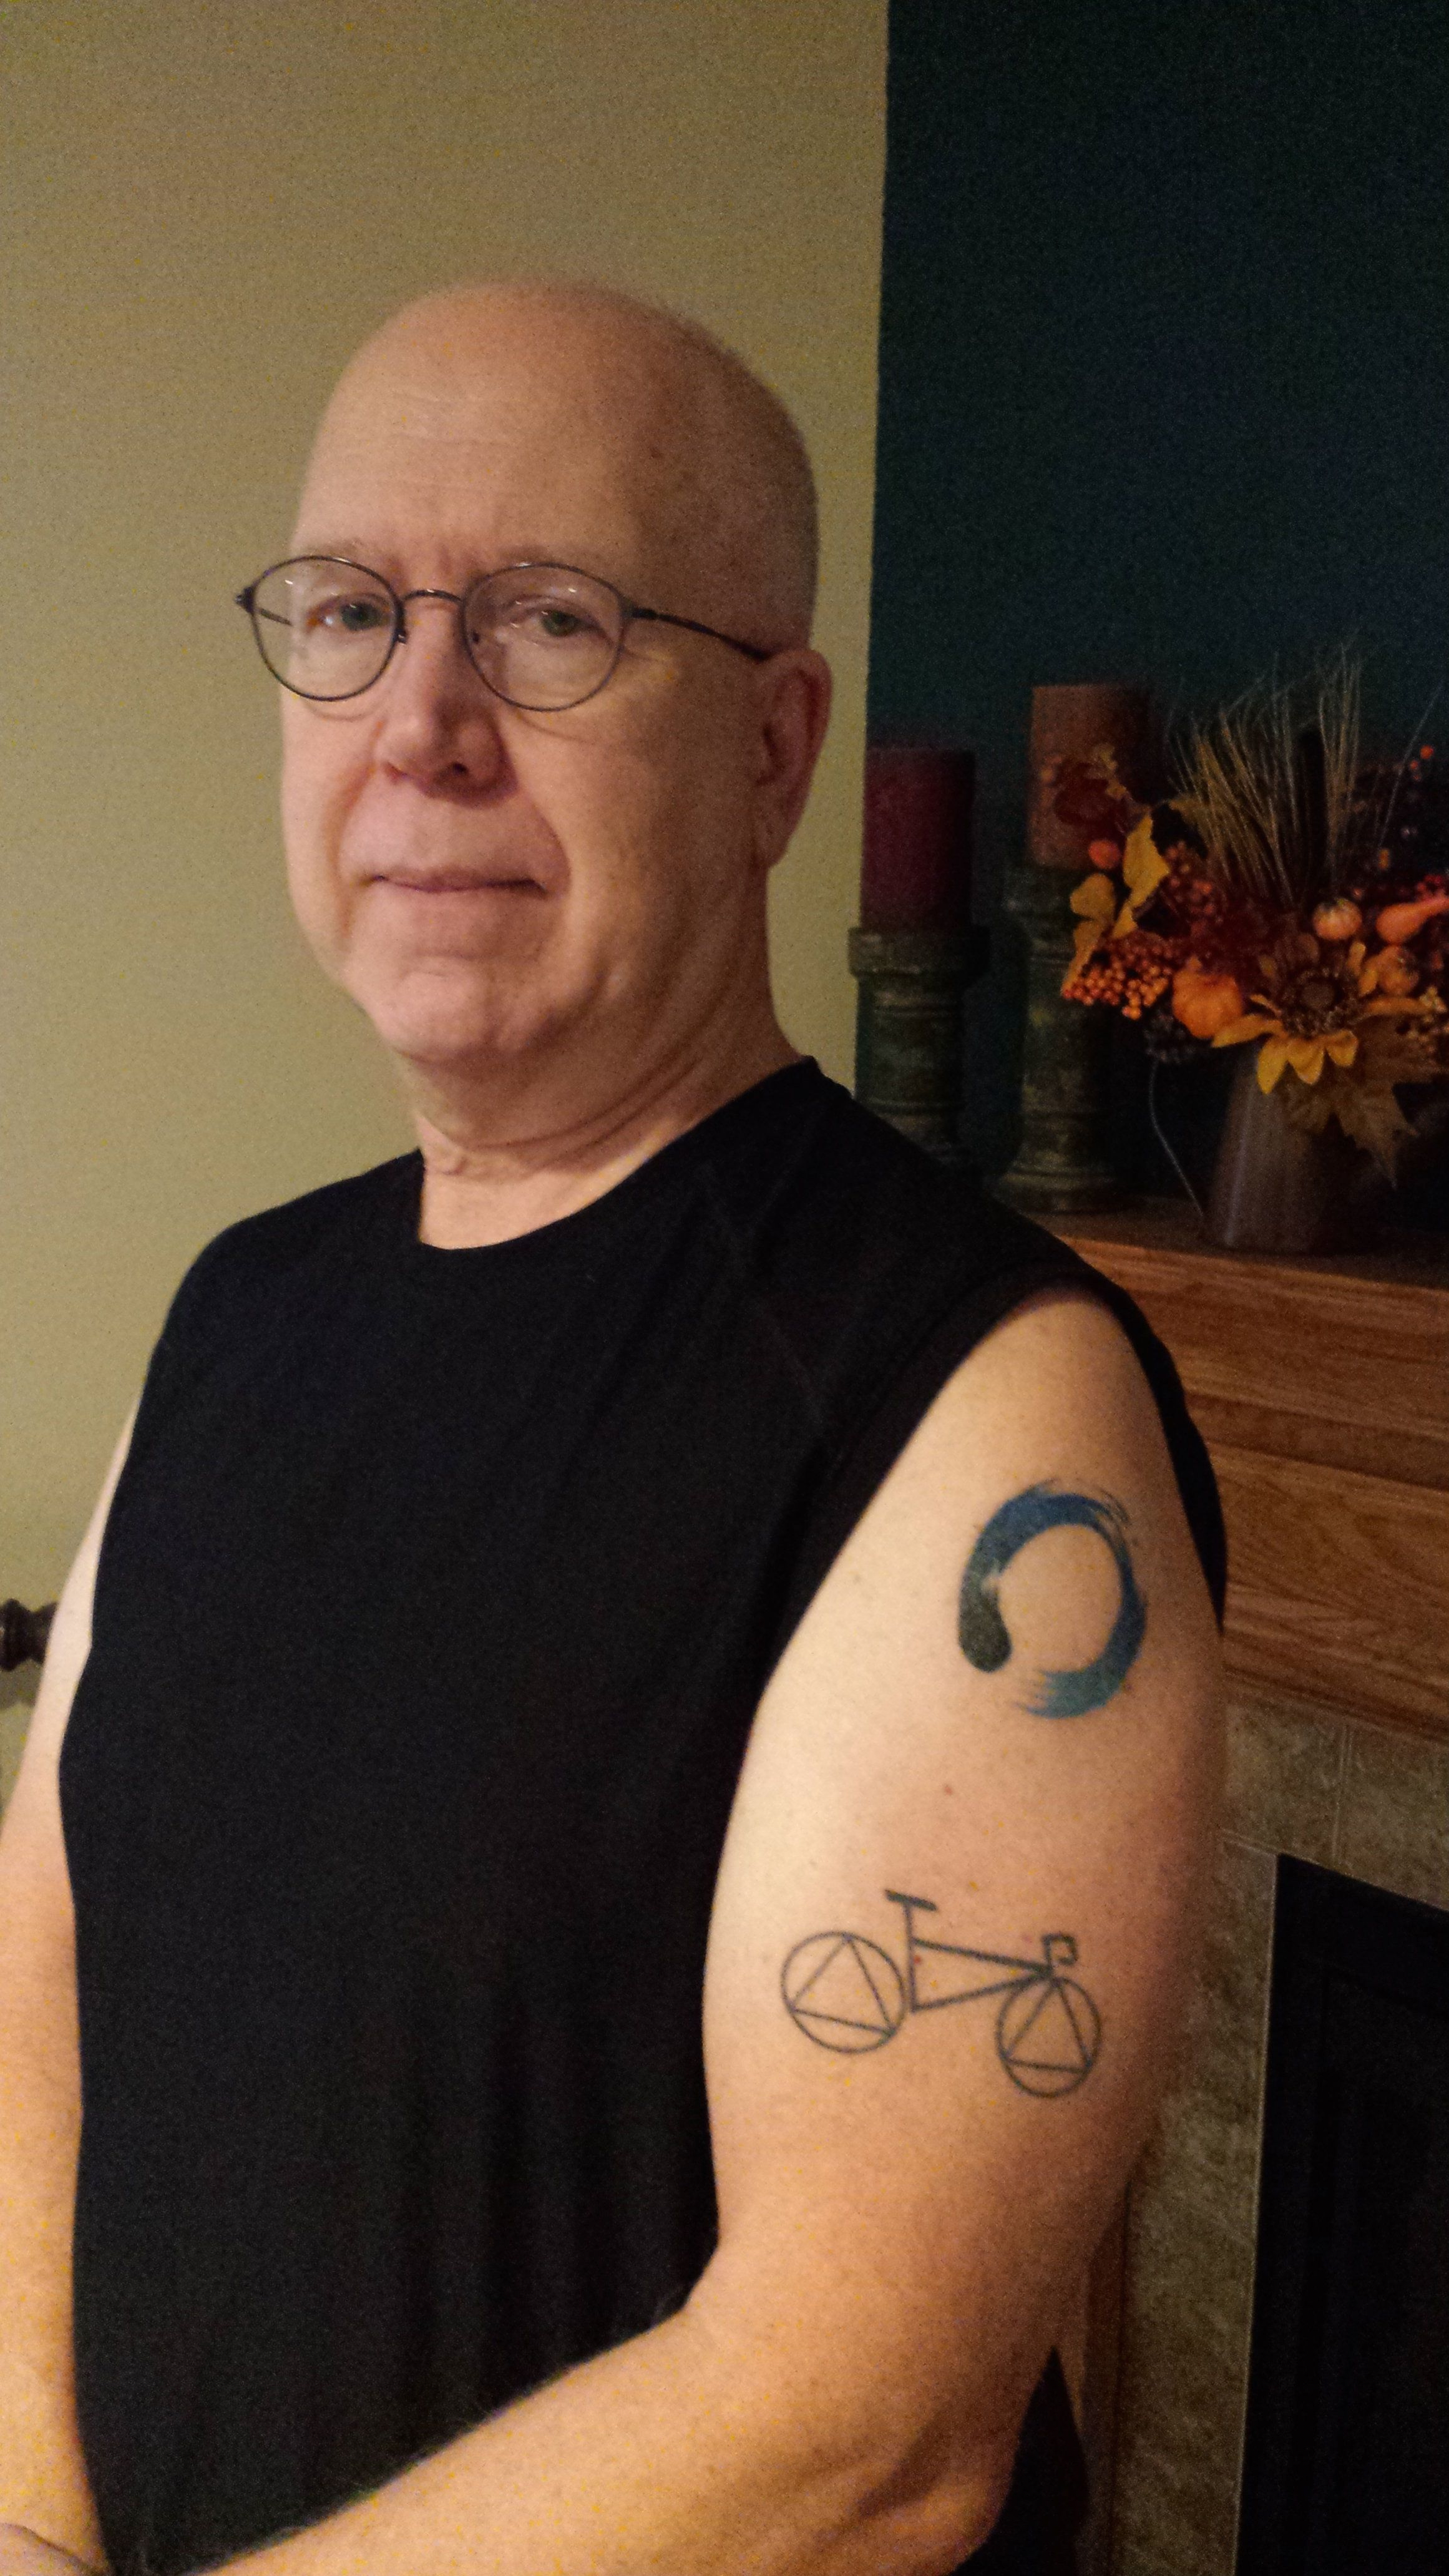 "<i>""My wife and I started dating at age 60 and she said she would like to get a tattoo, but was afraid to go through wi"